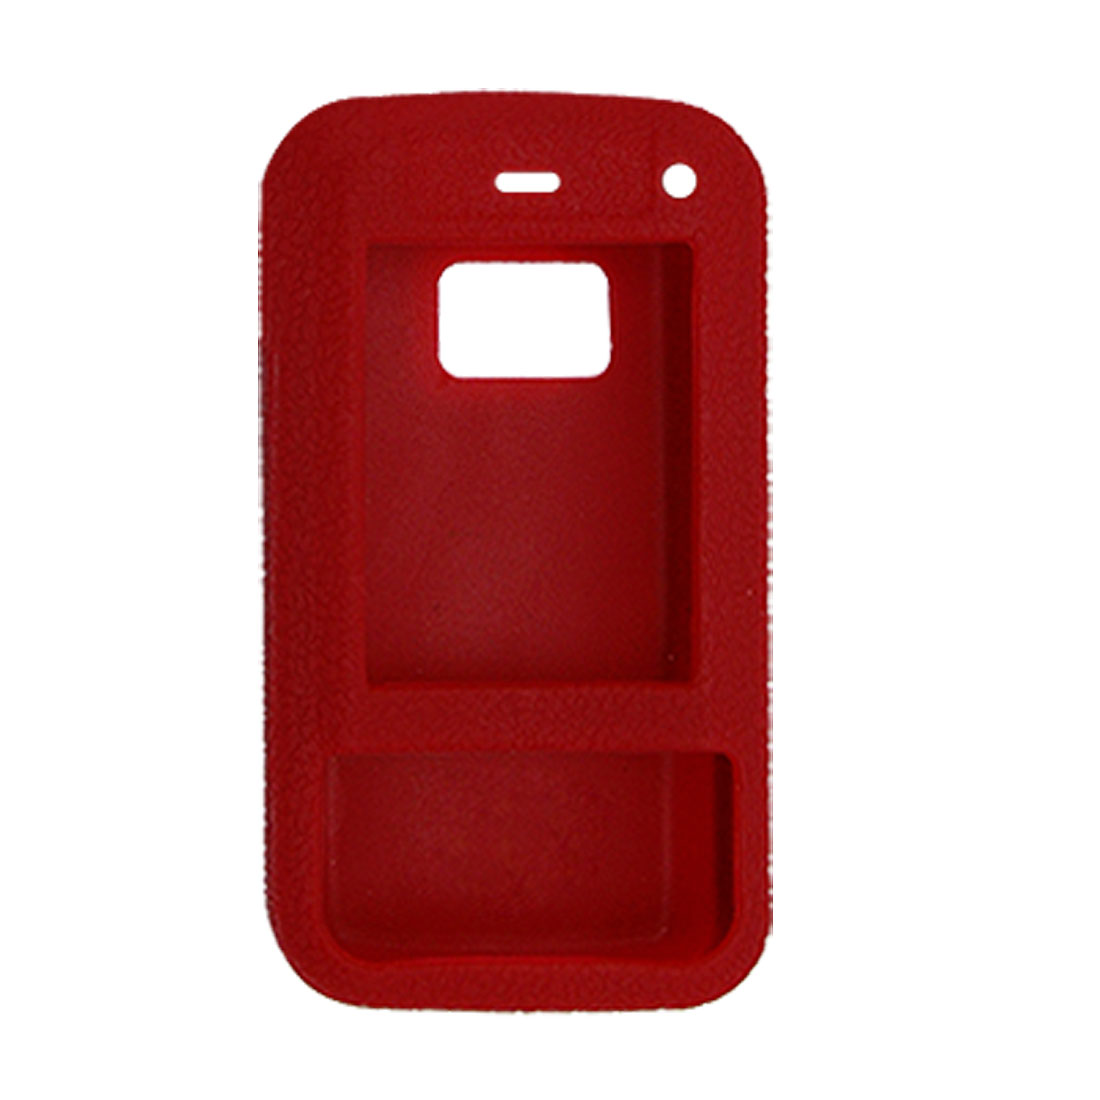 Red Textured Silicone Skin Case Cover for Nokia N81